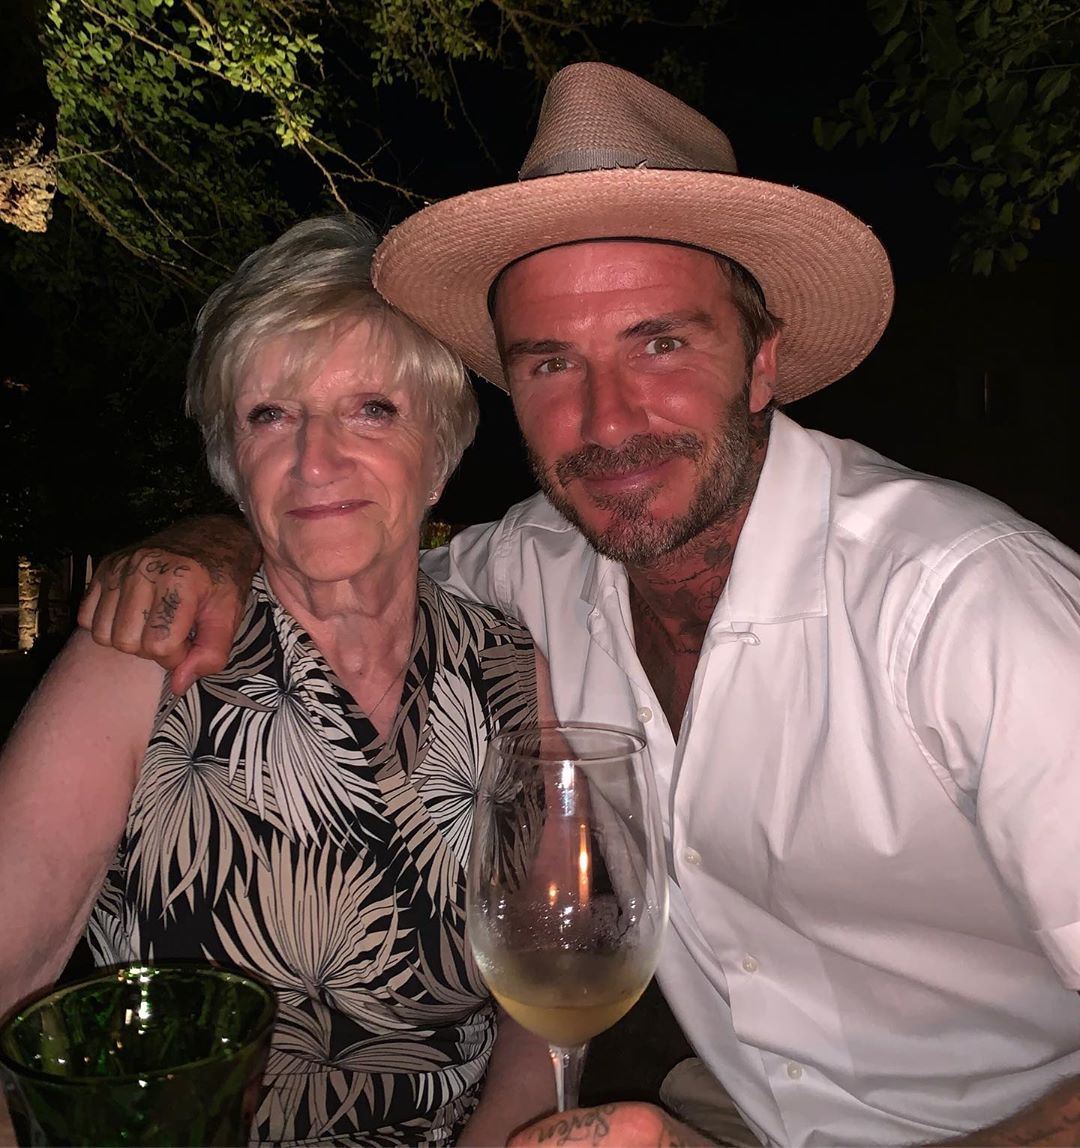 David Beckham Instagram: Summer time with mum ...